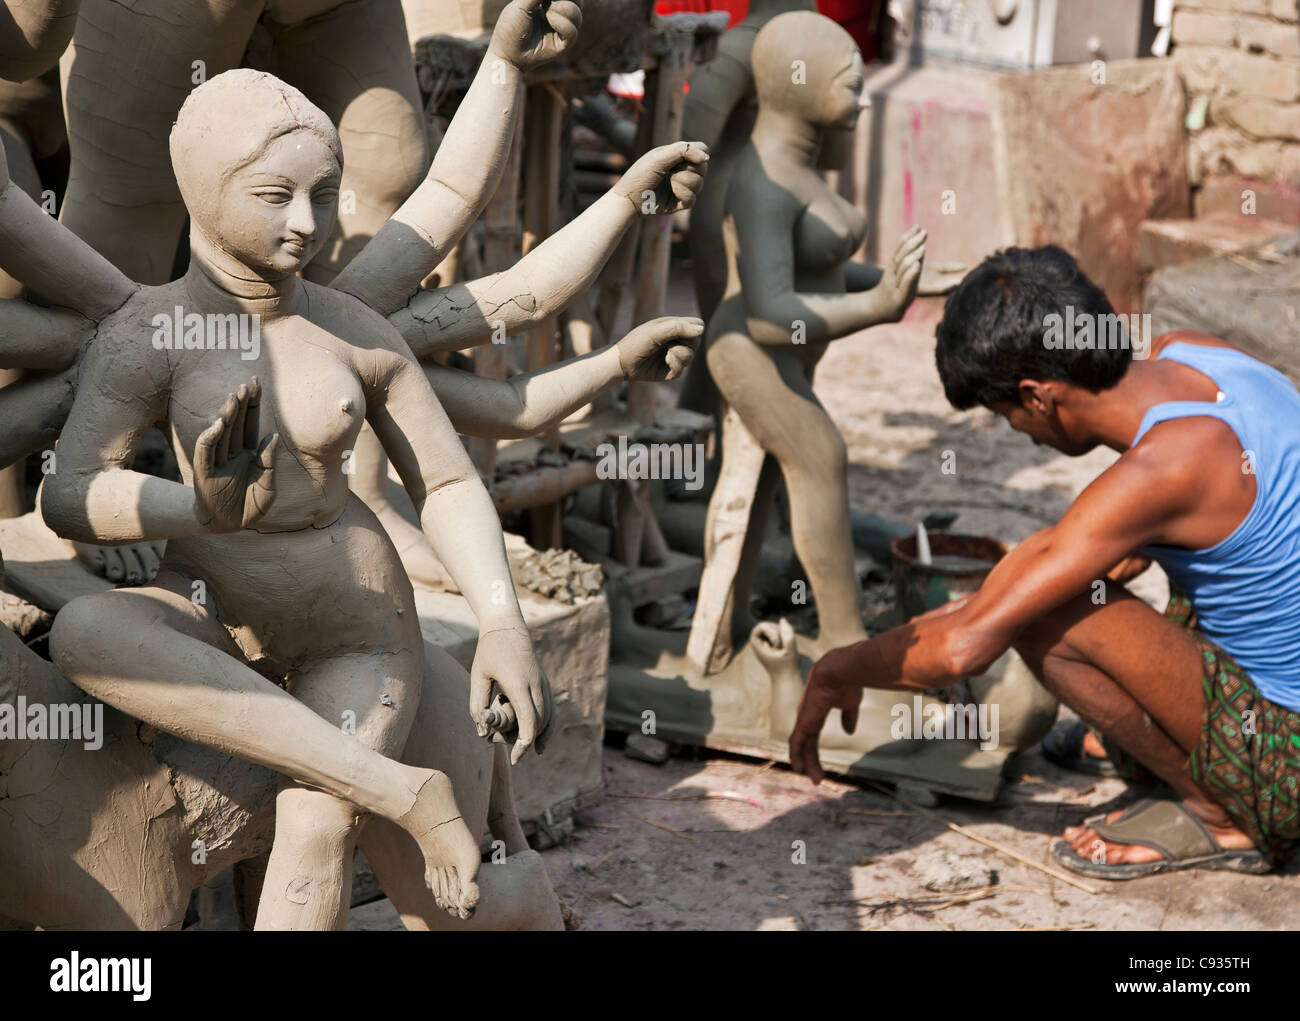 A craftsman makes religious statues in clay for Hindu temples on the outskirts of Kolkata. - Stock Image